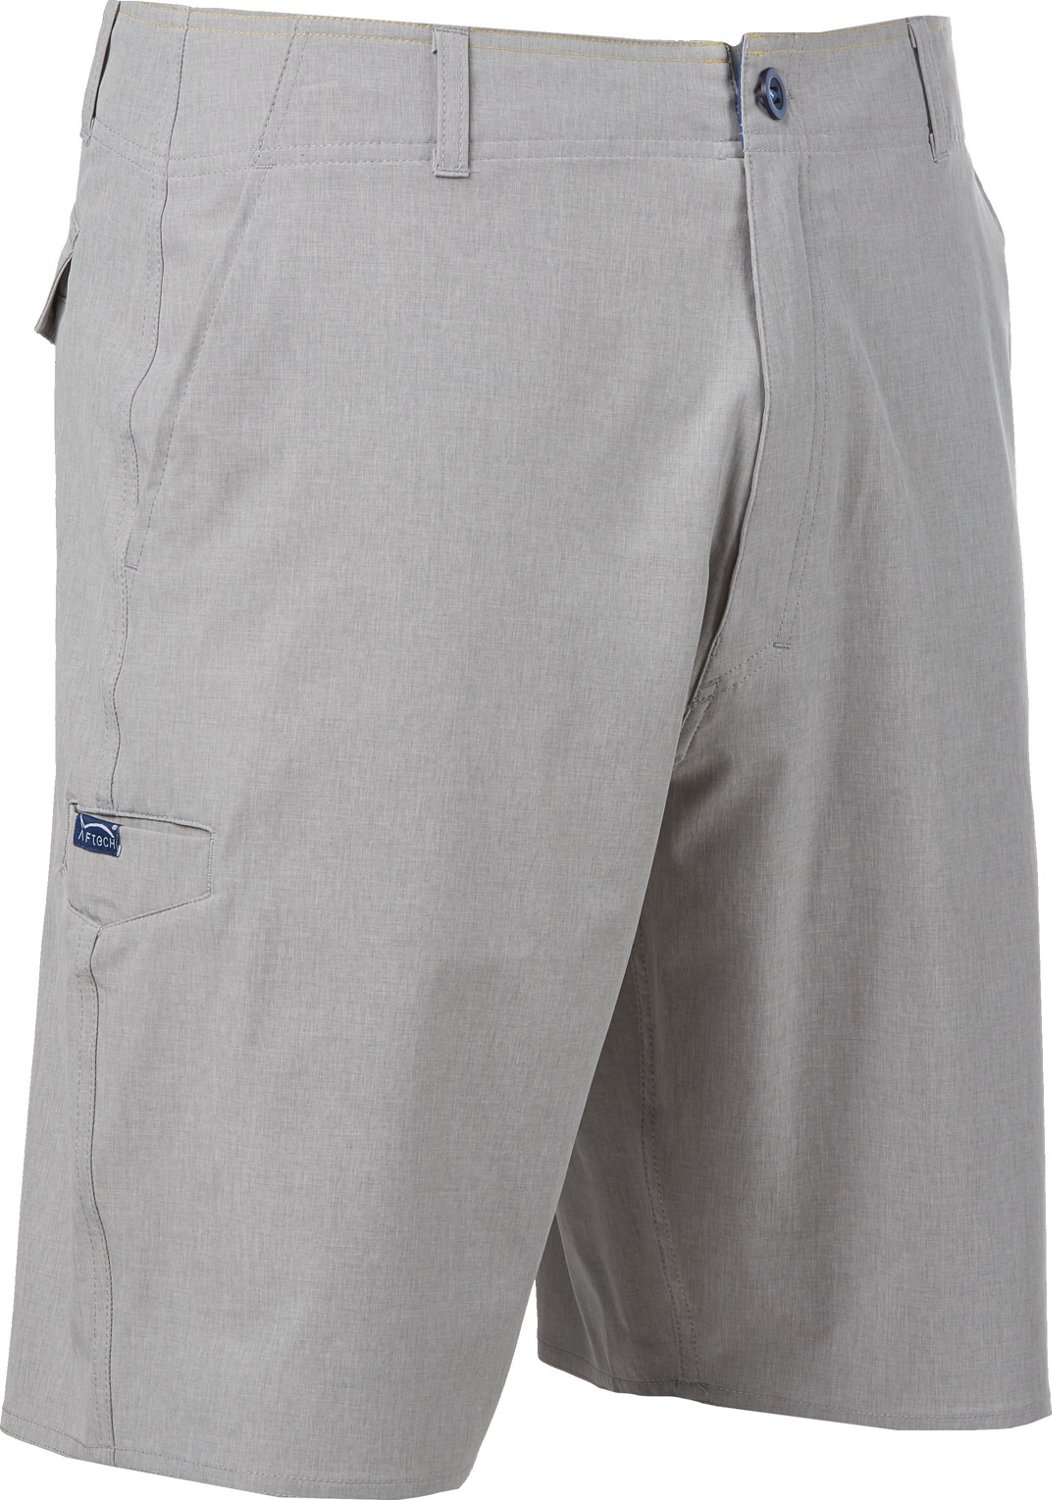 068eab55 AFTCO Bluewater Men's Cloudburst Fishing Shorts 10 in | Academy